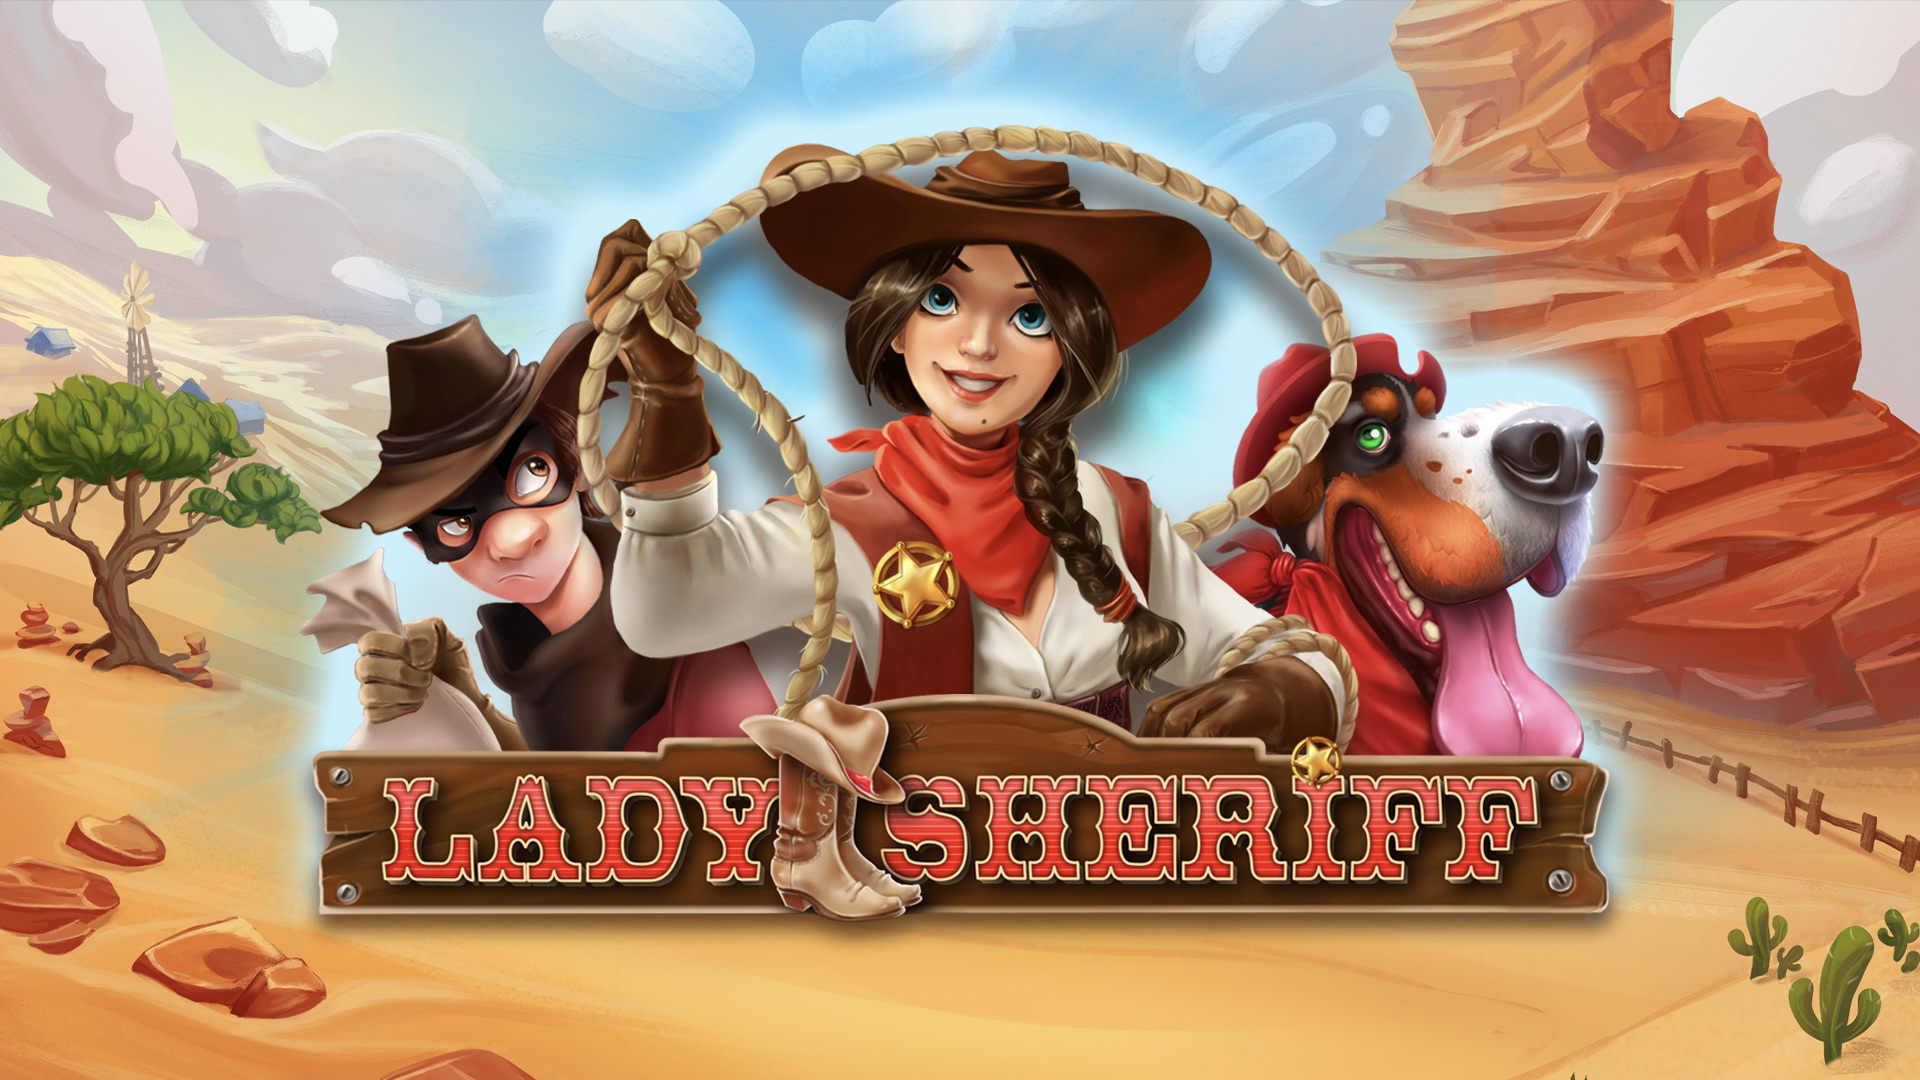 Lady Sheriff is a 5x3, 15-payline video slot including features such as expanding wilds, free spins and a bonus game.